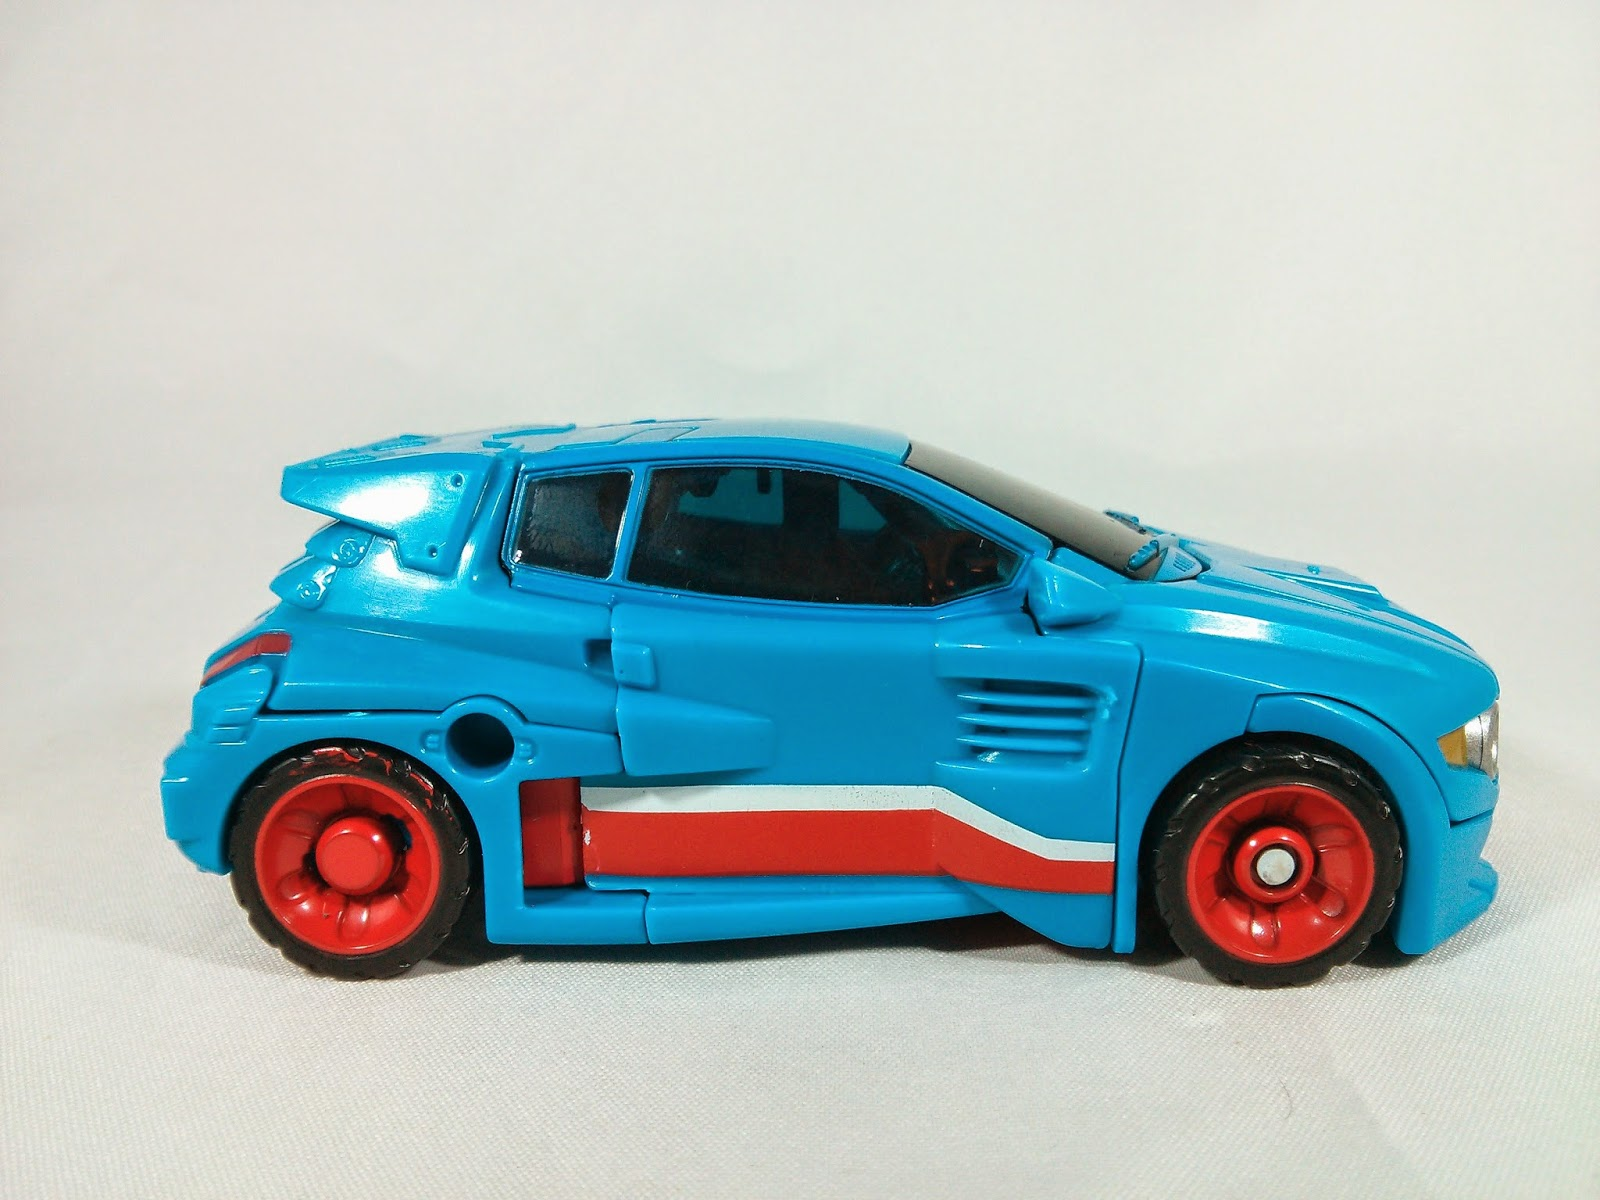 a side shot of the alt mode